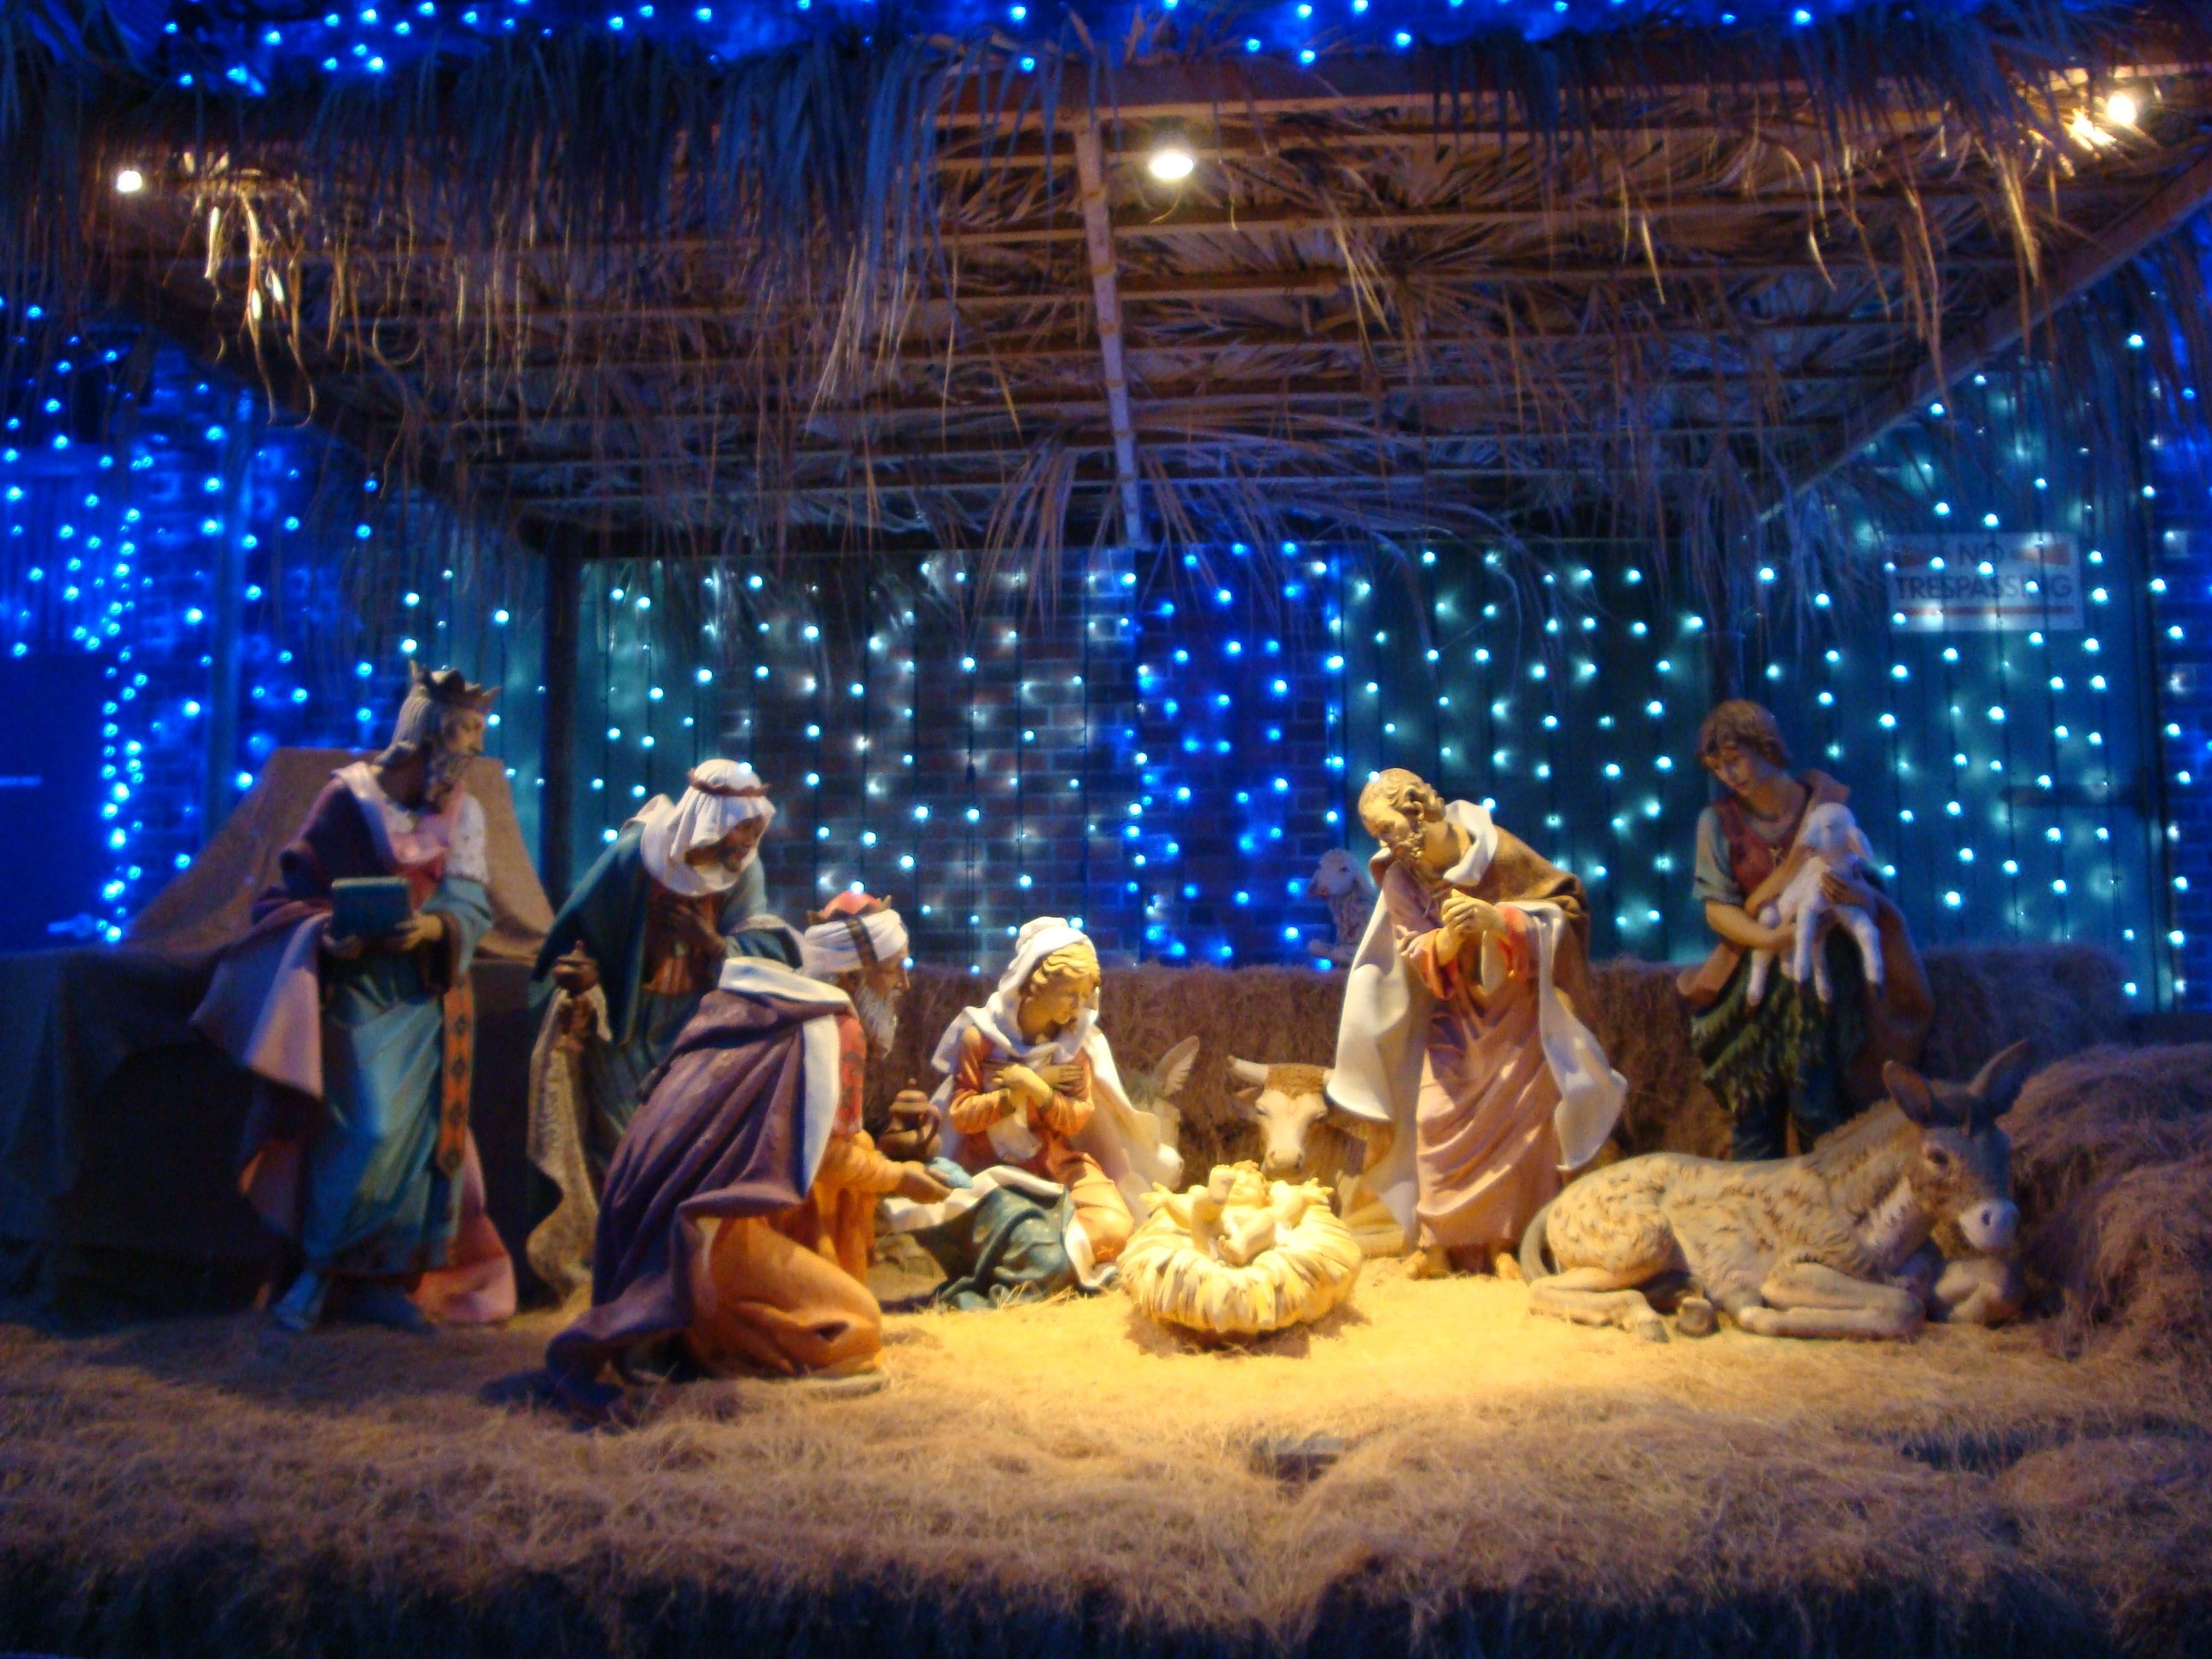 … Cool Manger Scene Clipart Wallpaper Free Wallpaper For Desktop and  Mobile in All Resolutions Free Download